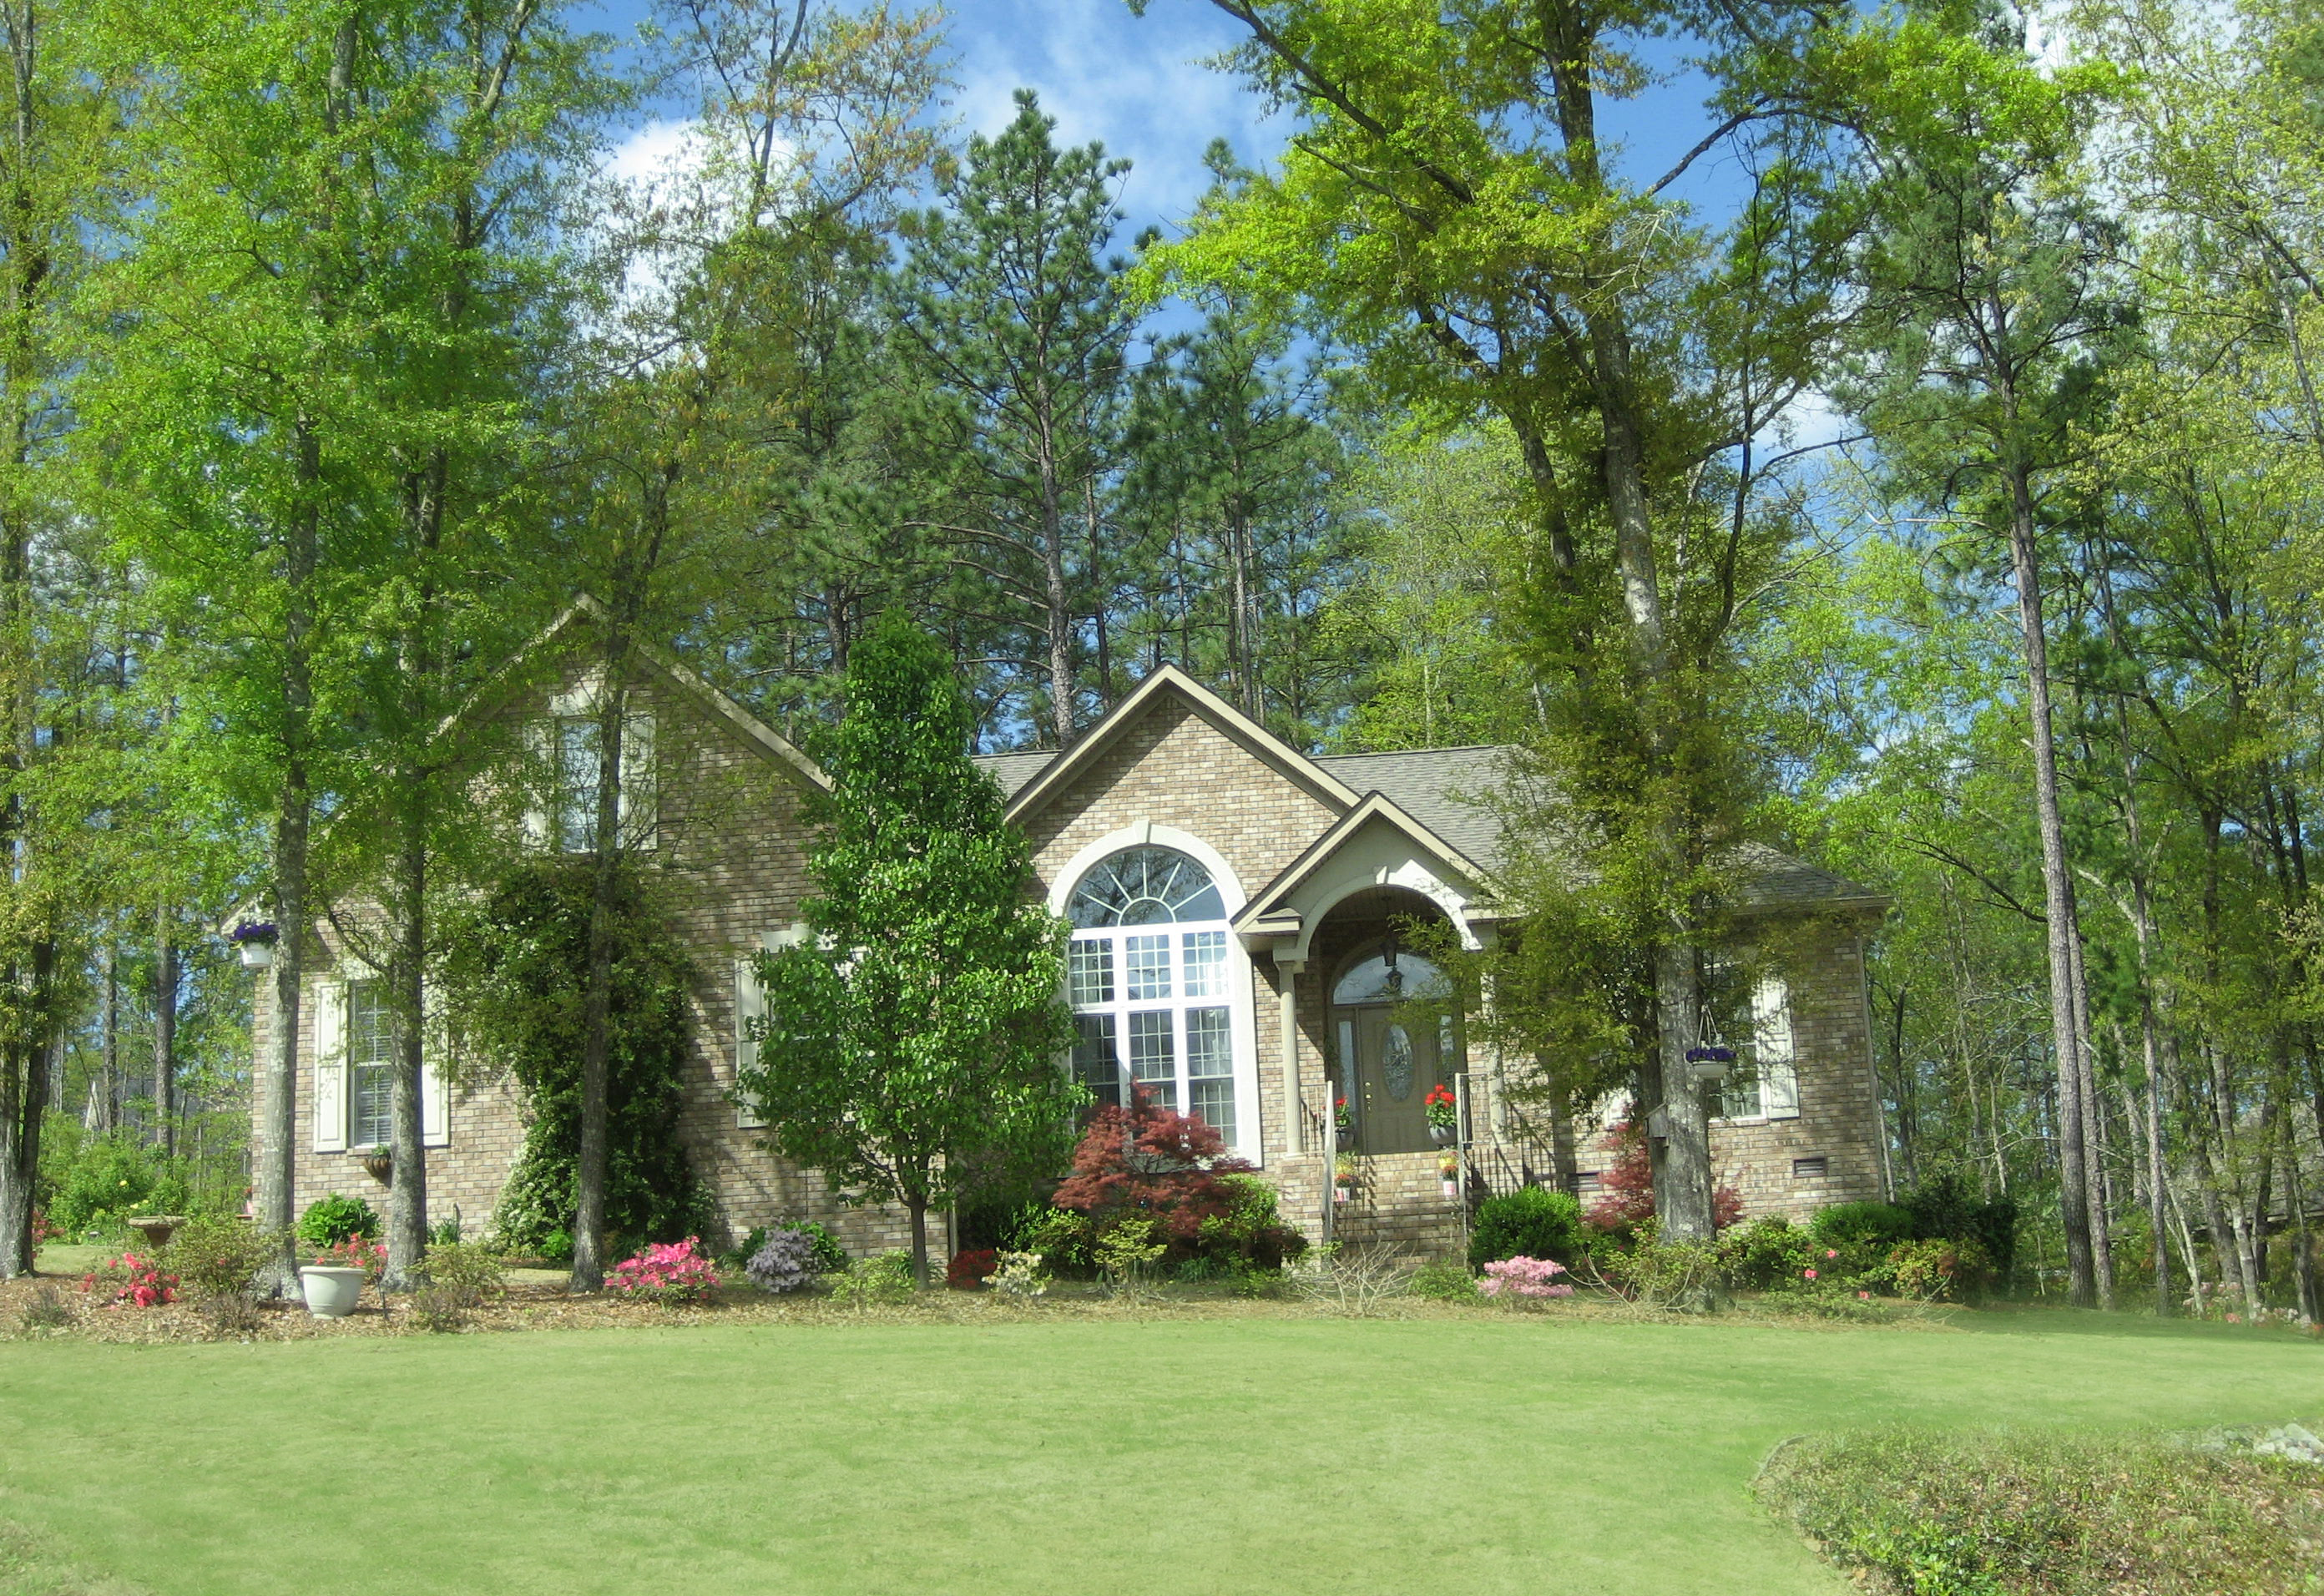 103 Steeple Ridge Rd, Aiken, SC 29803